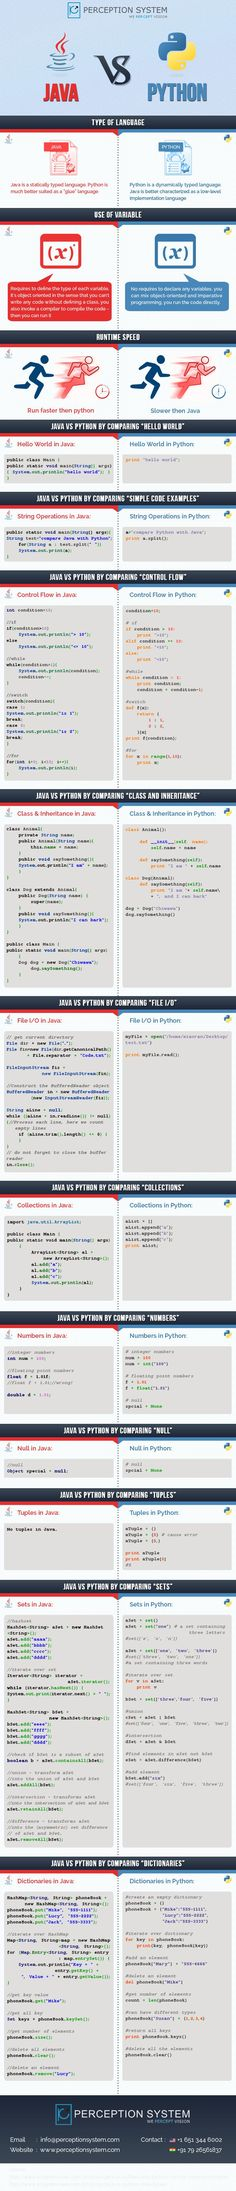 7 best Programming images on Pinterest Web development, Coding and